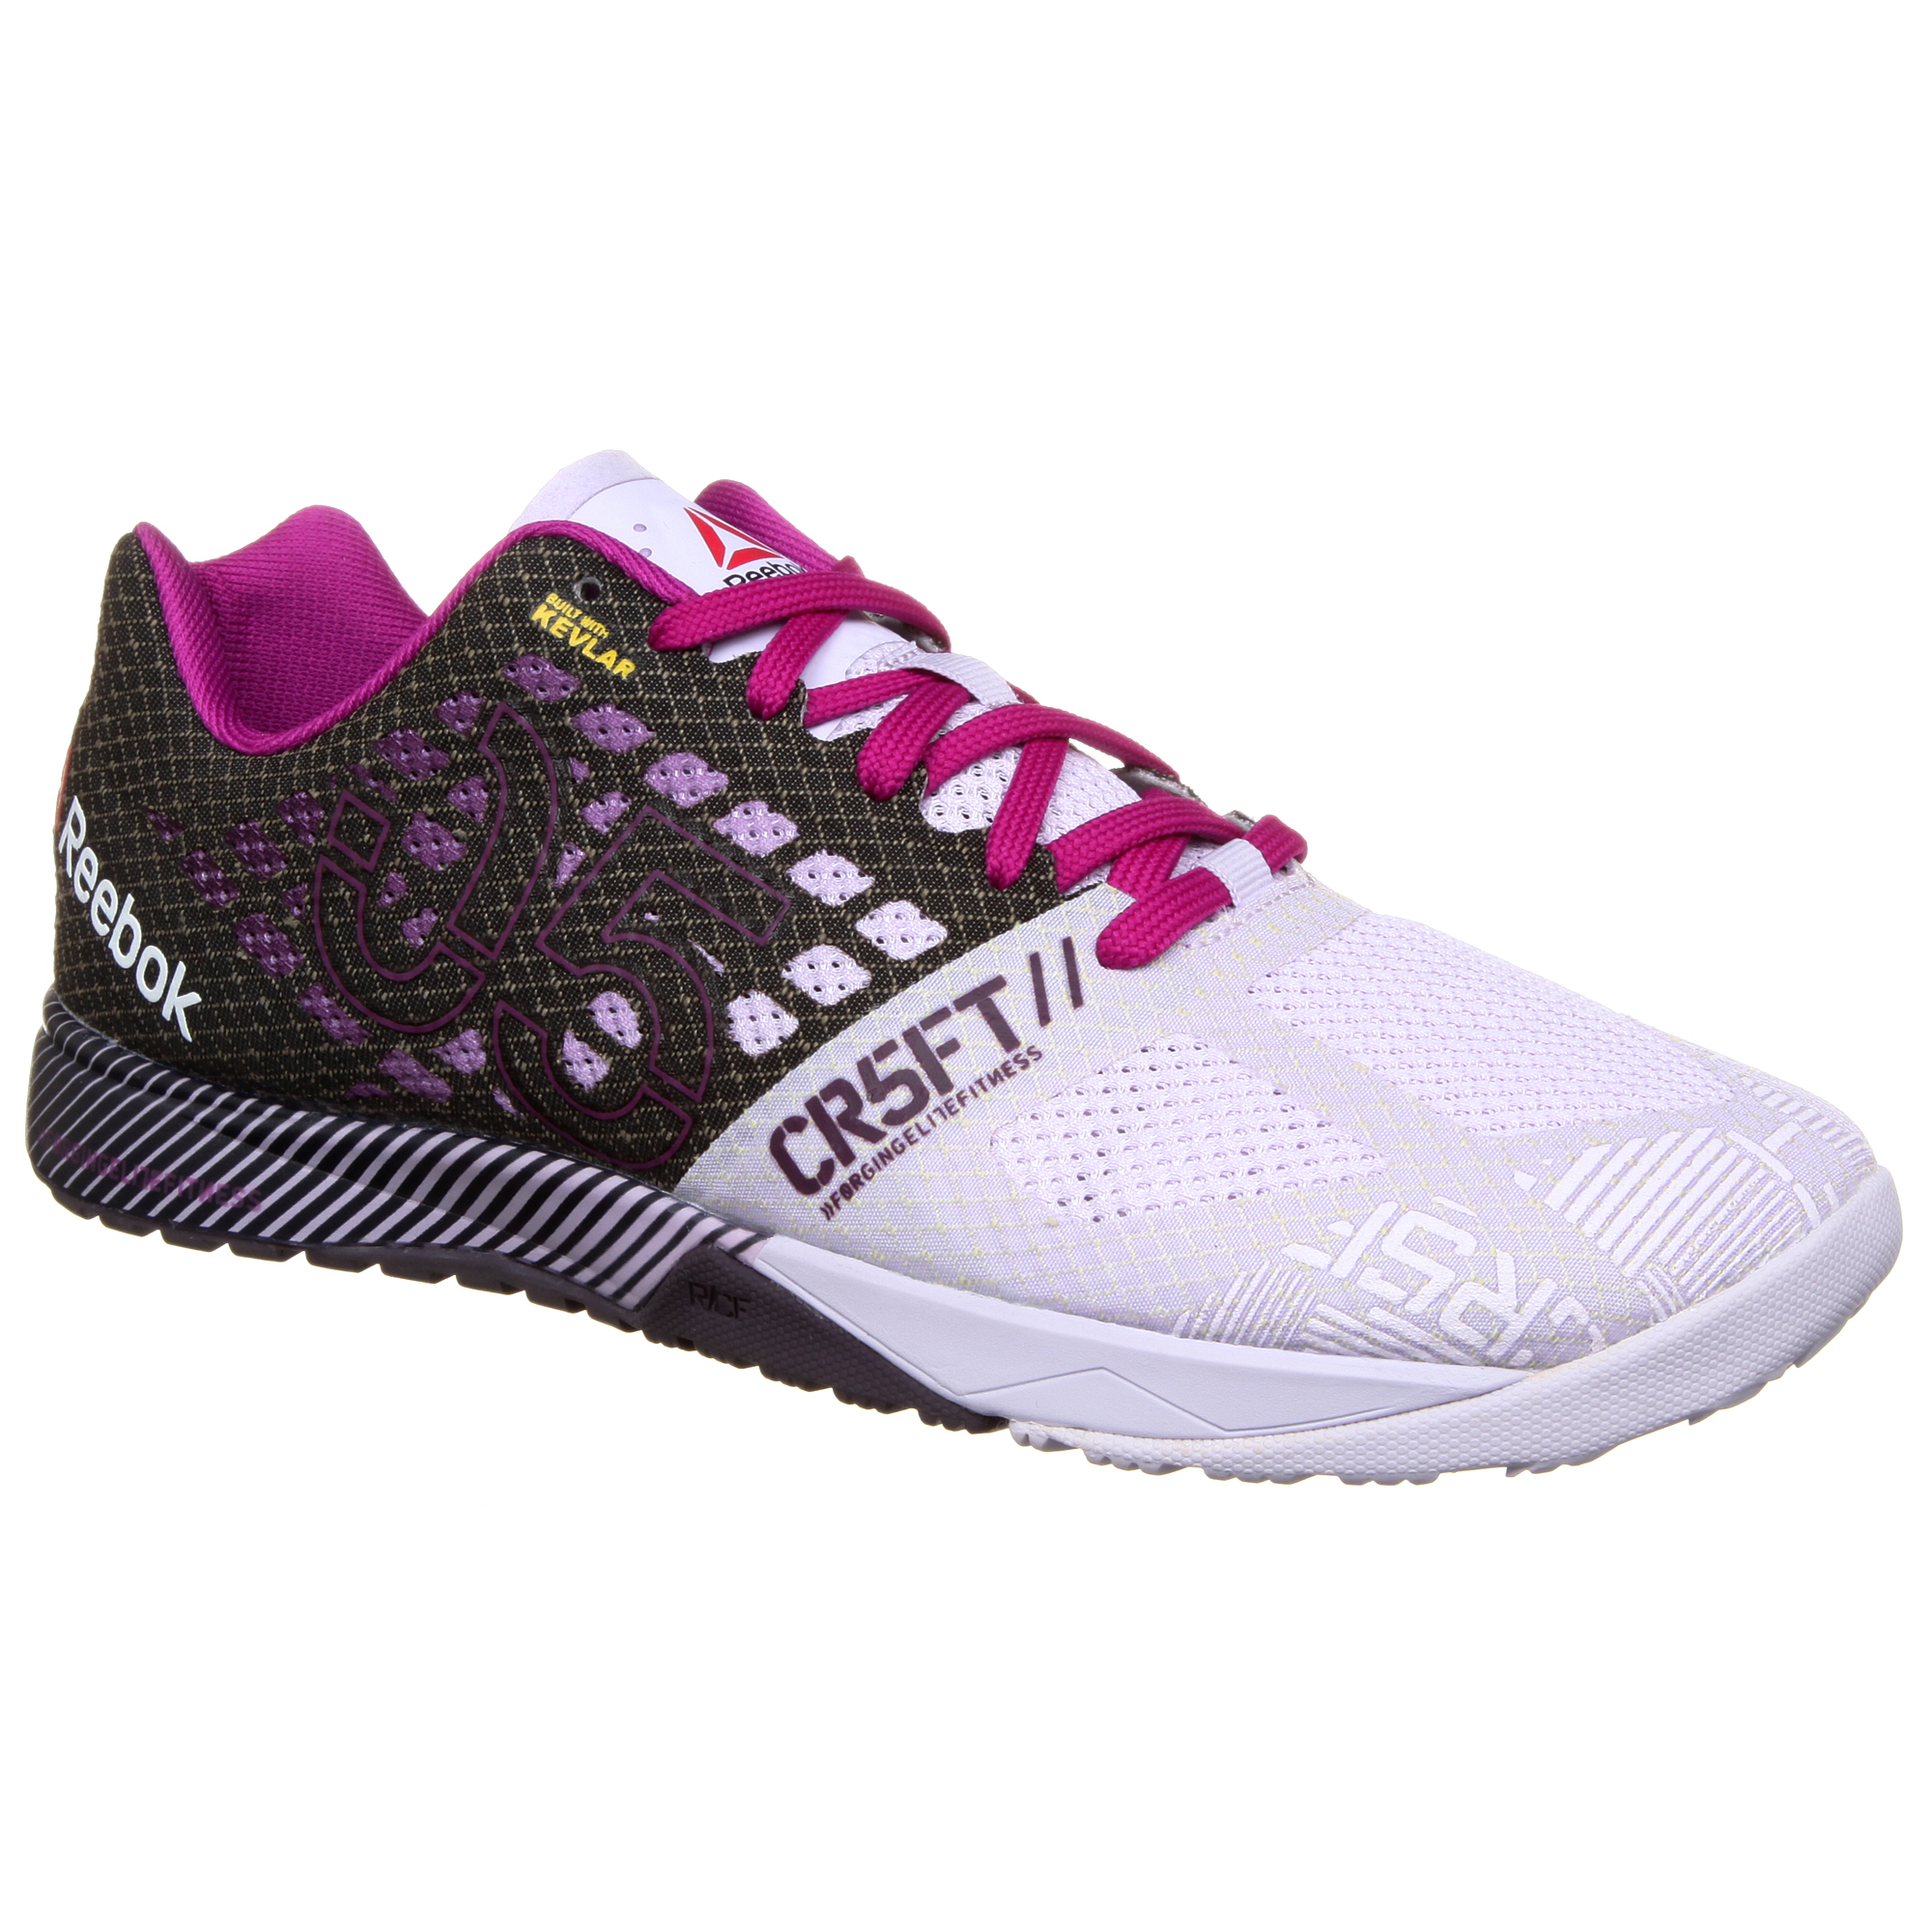 crossfit nano 4 womens cheap   OFF57% The Largest Catalog Discounts d20cea7e1